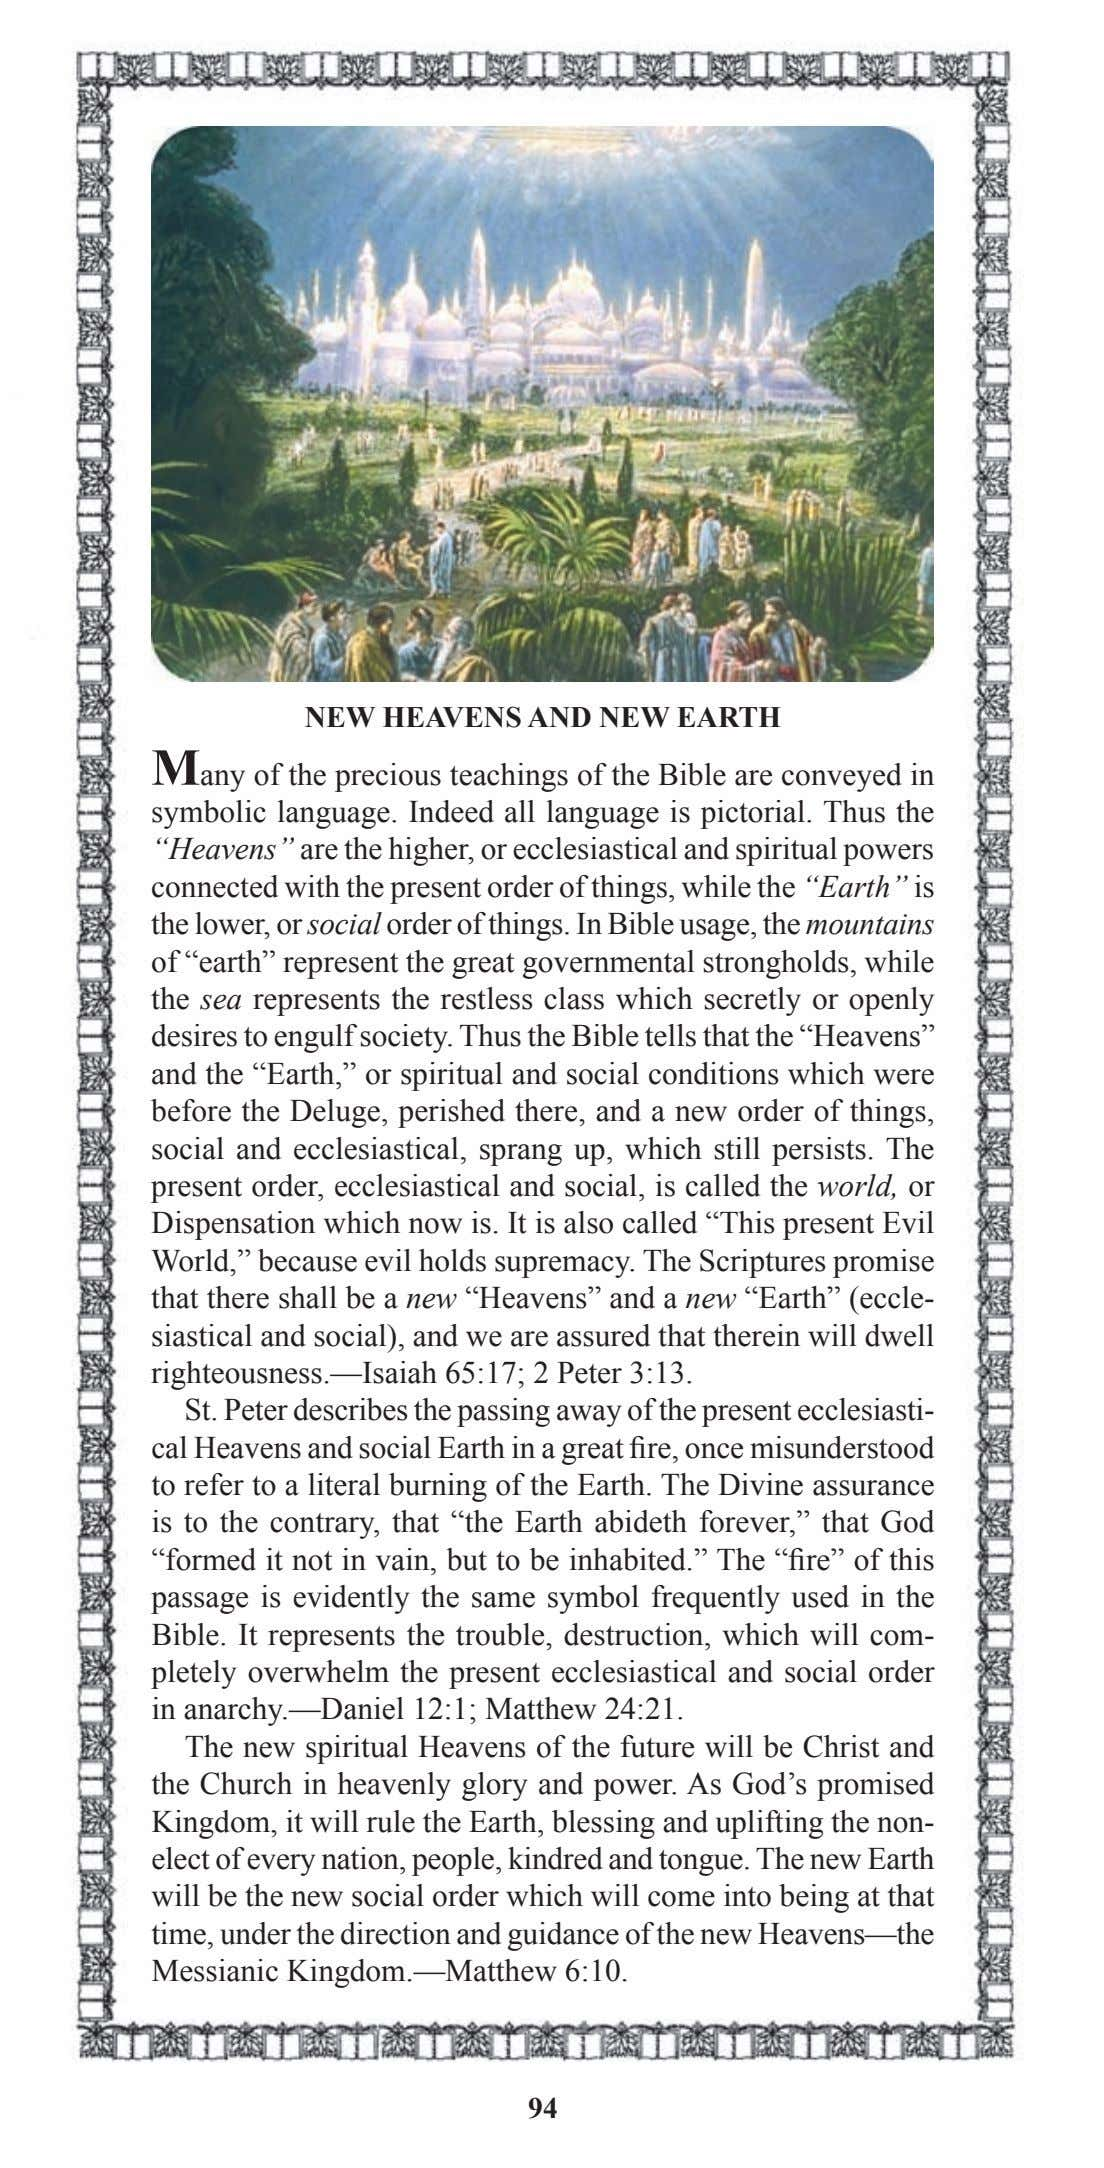 NEW HEAVENS AND NEW EARTH Many of the precious teachings of the Bible are conveyed